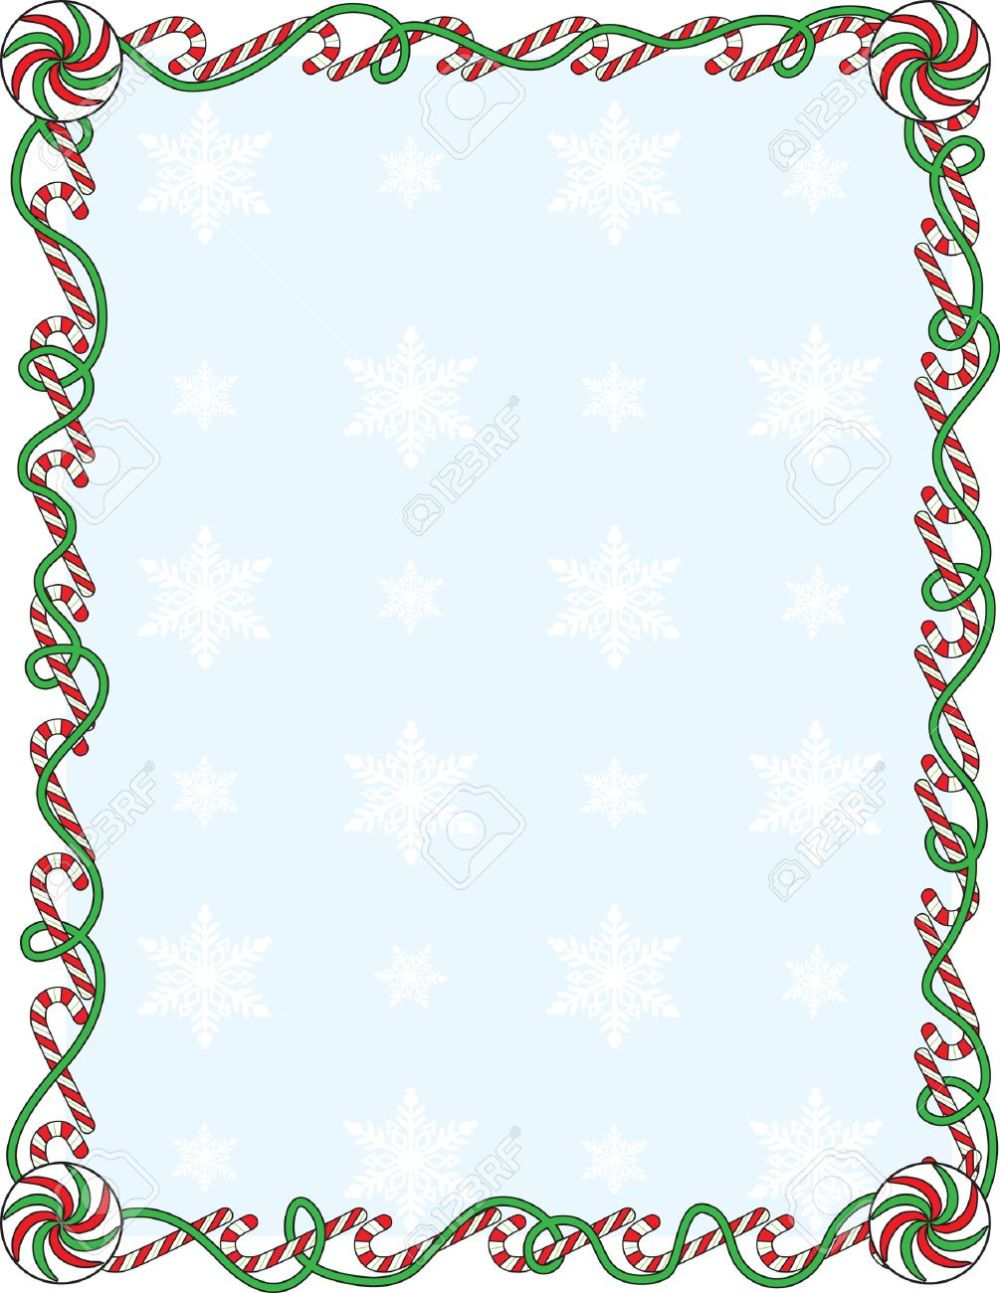 medium resolution of a border or frame with candy canes and ribbons stock vector 5799892